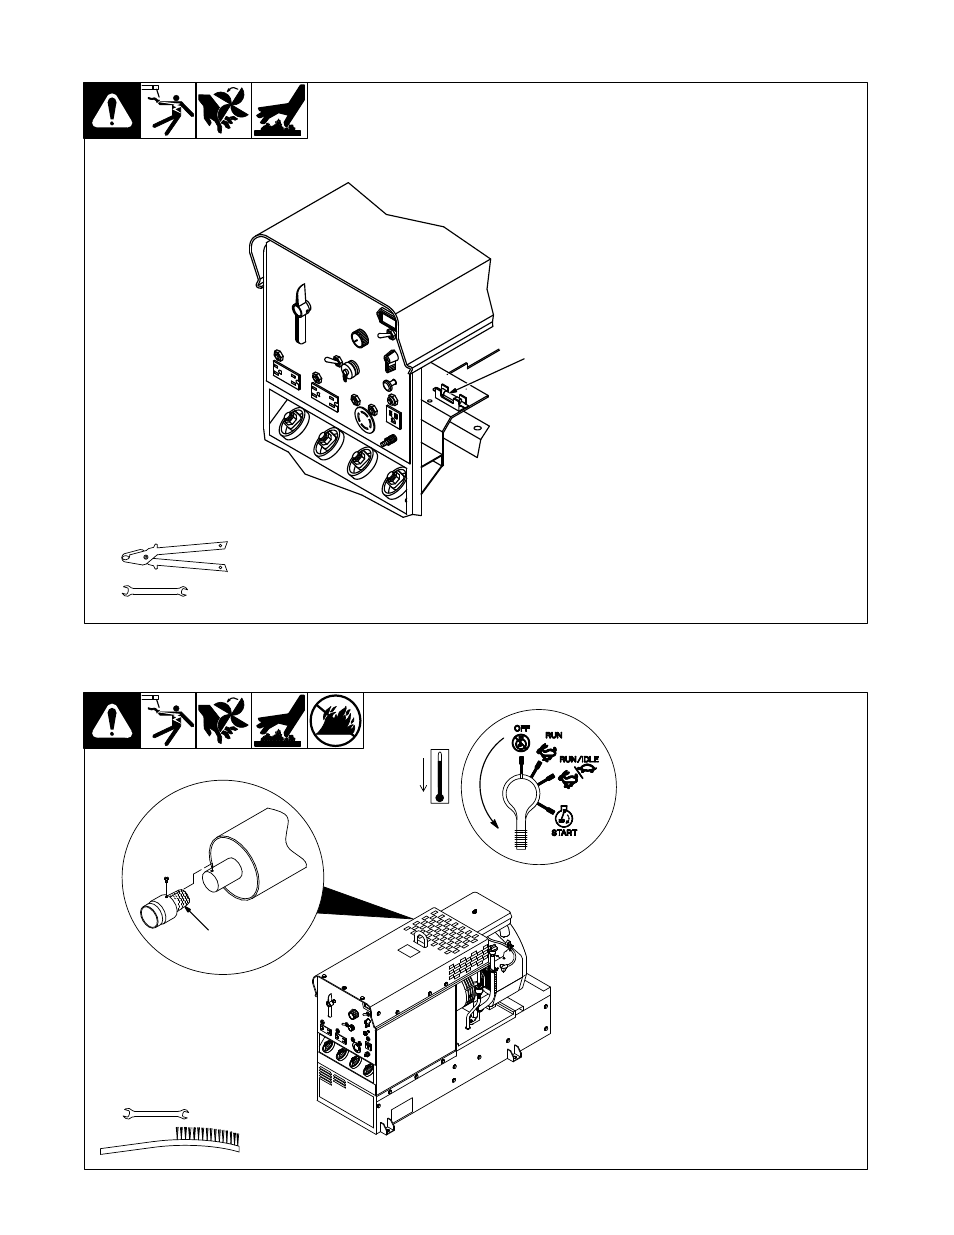 6 overload protection 7 inspecting and cleaning optional spark 6 overload protection 7 inspecting and cleaning optional spark arrestor miller electric legend aead 200 le user manual page 44 68 swarovskicordoba Image collections